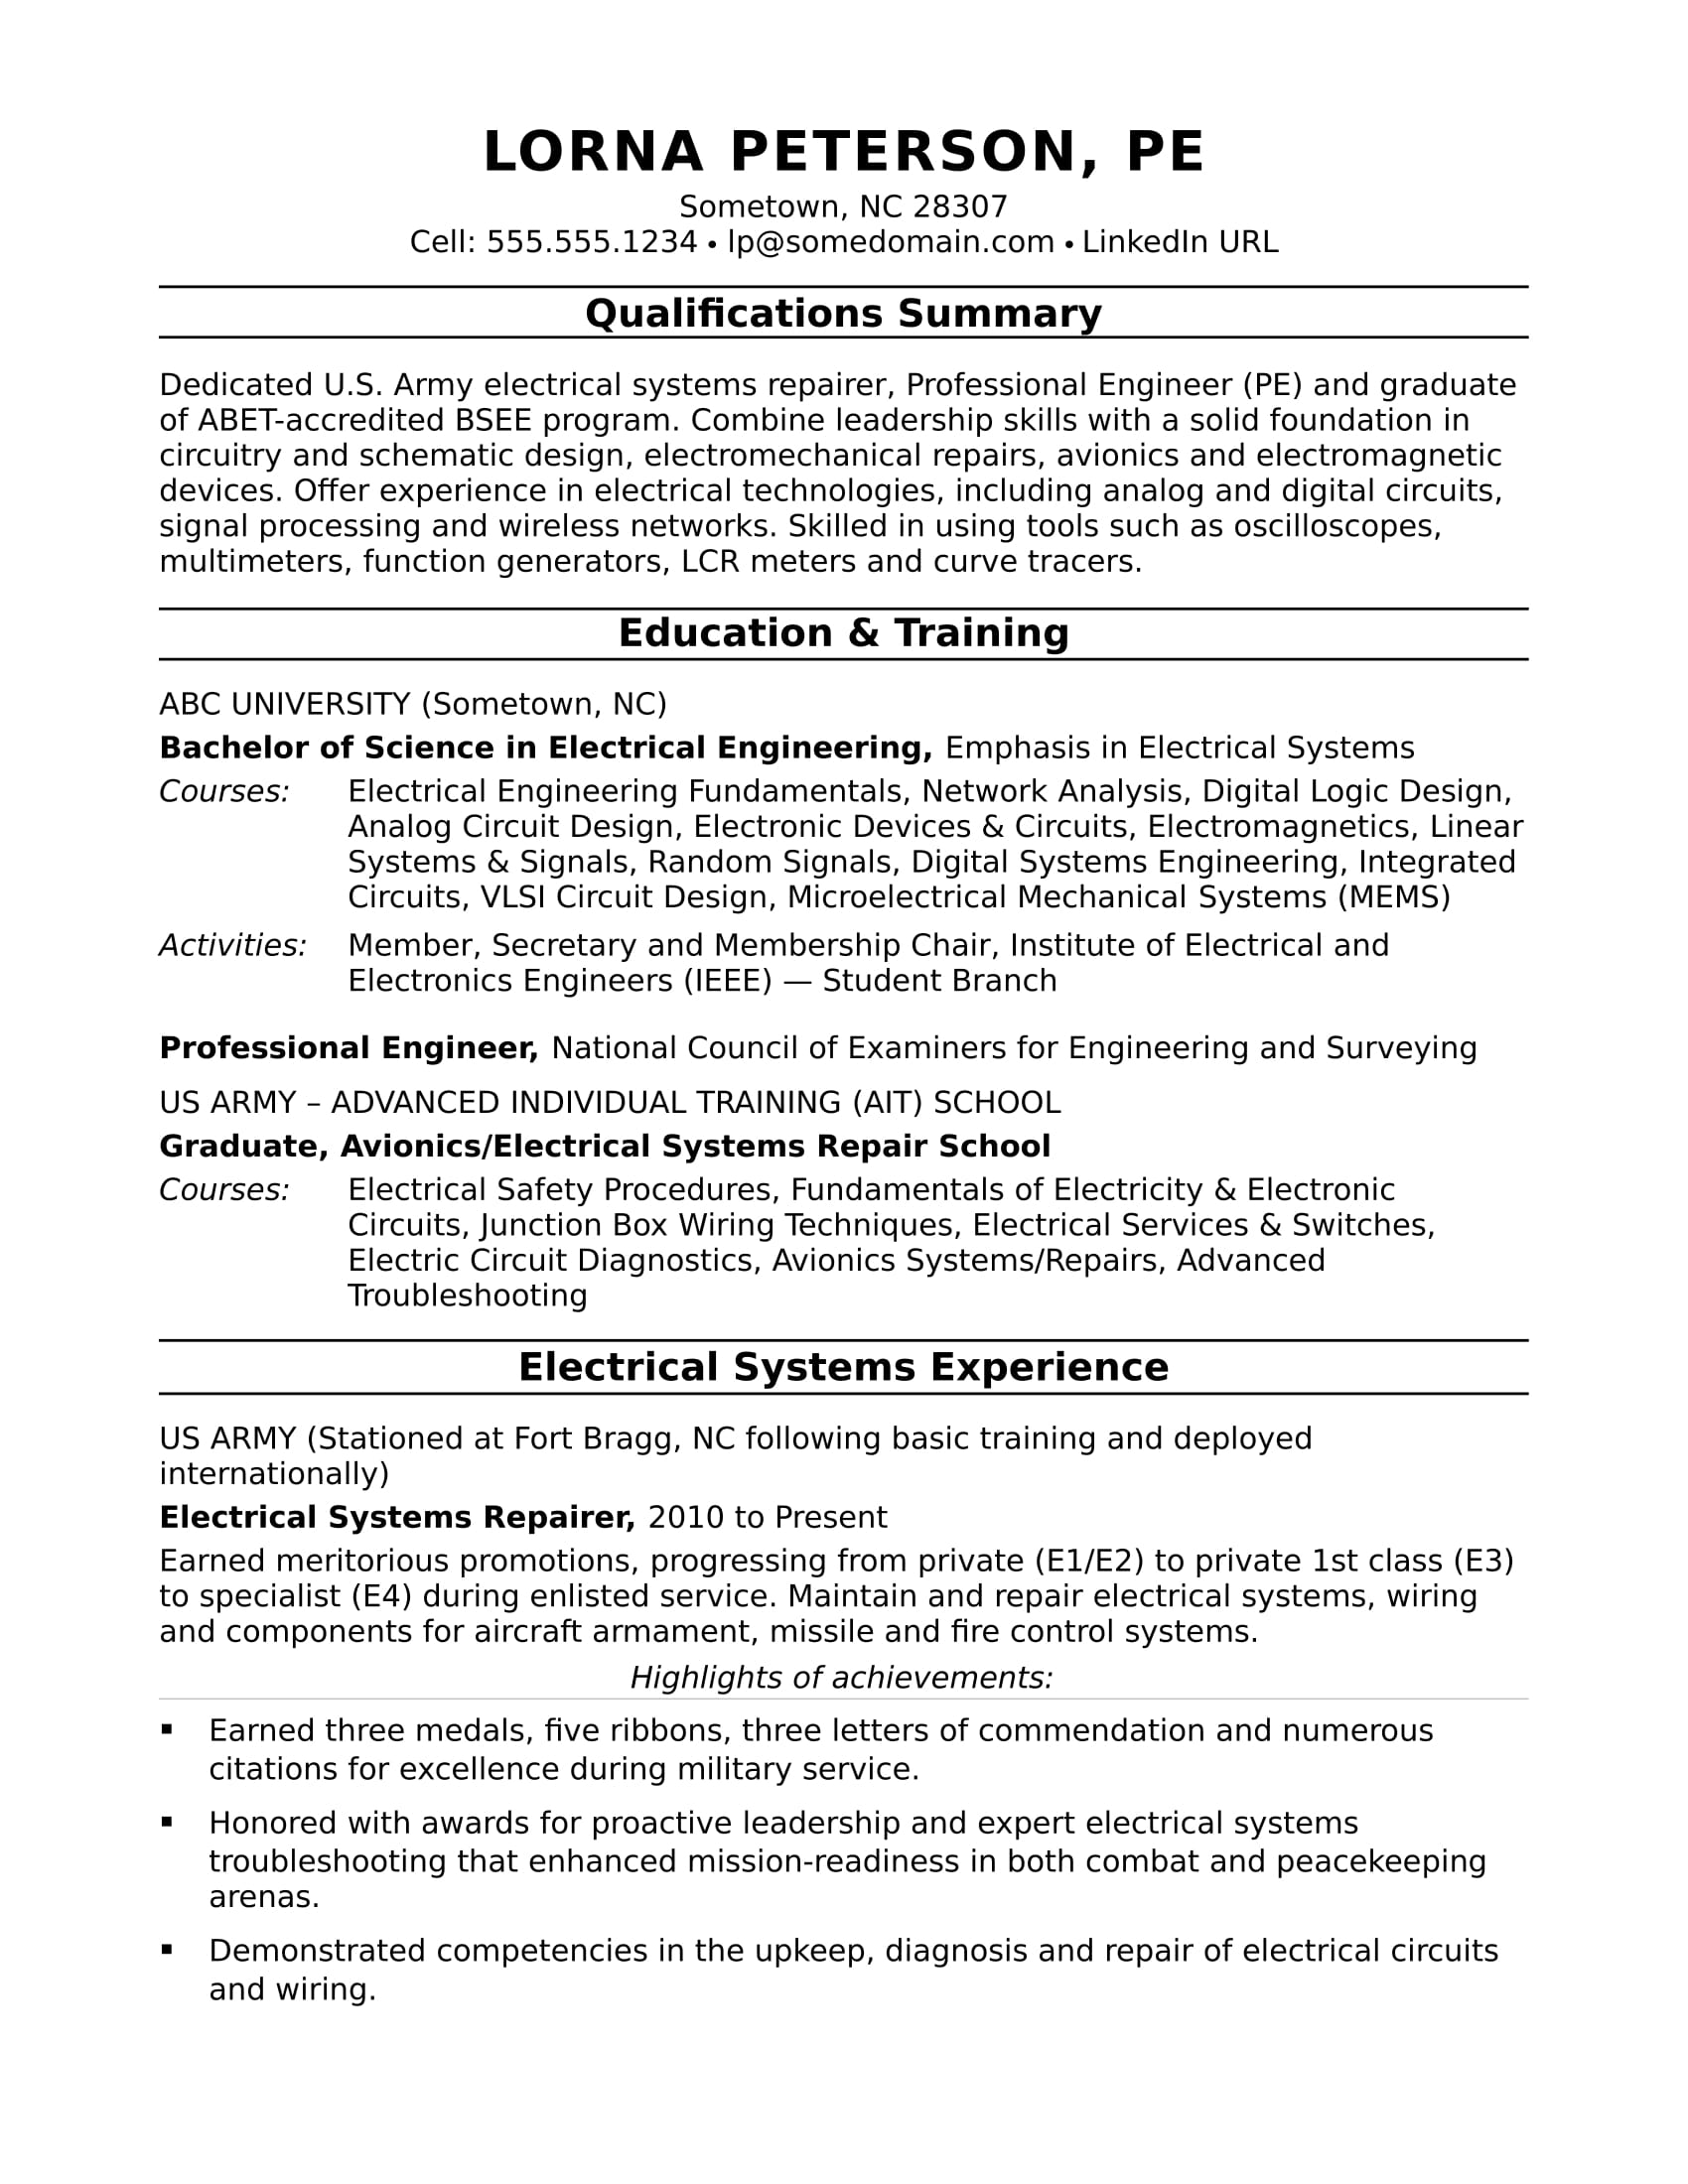 Sample Resume For A Midlevel Electrical Engineer  Resume For